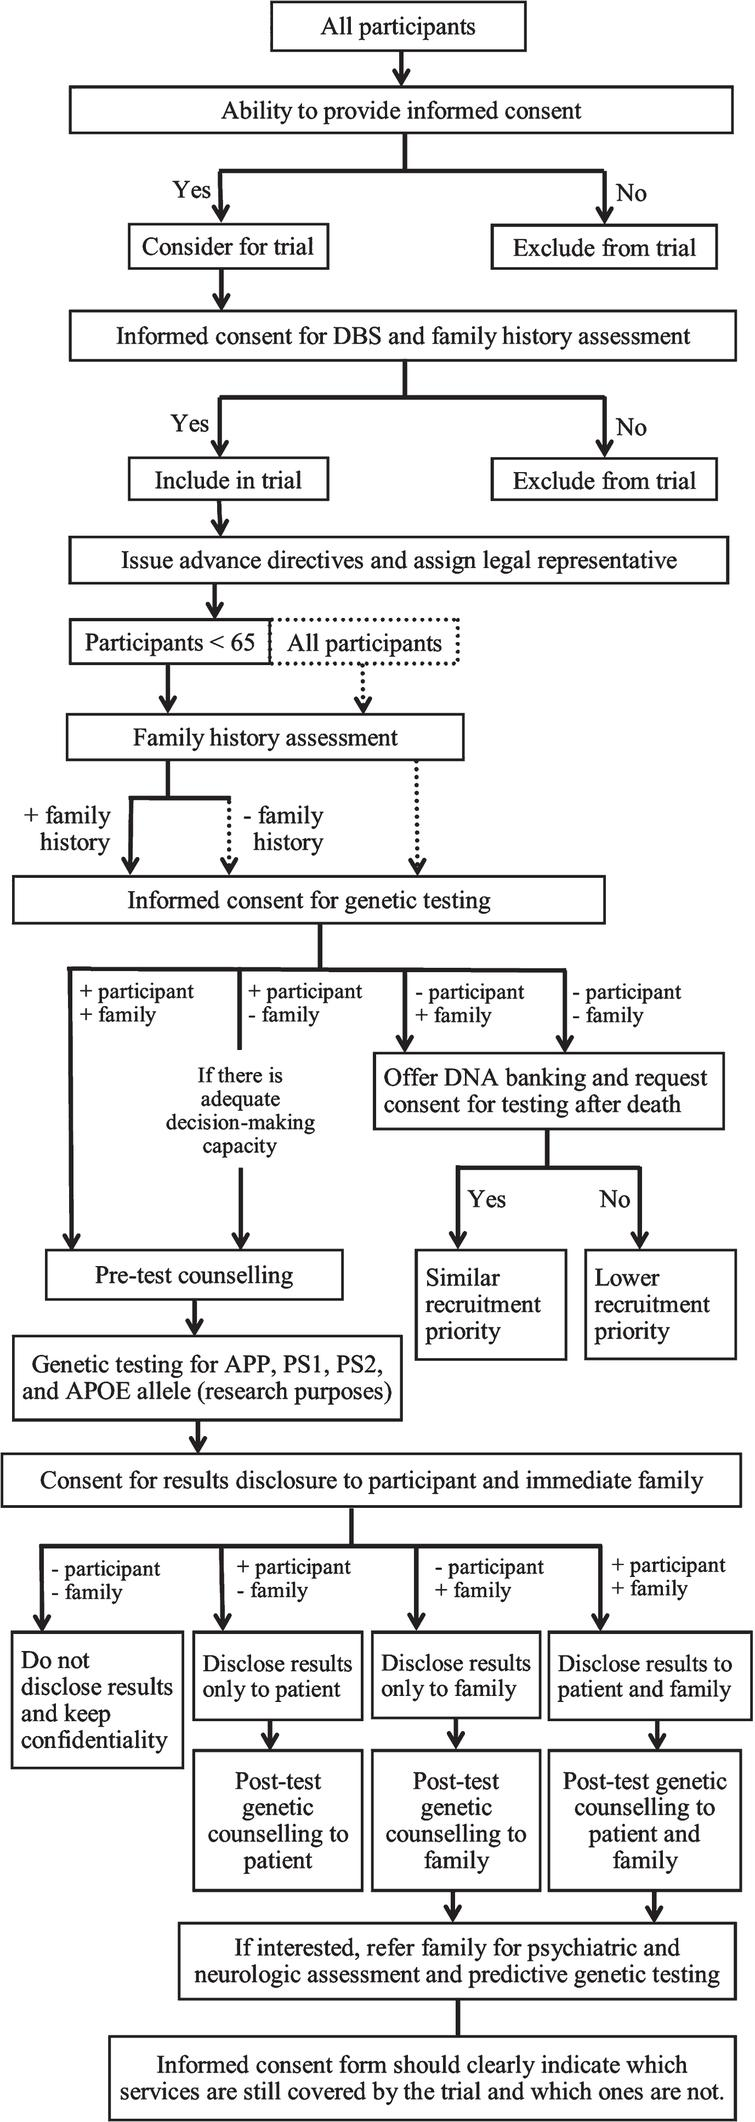 Ethical Considerations For Deep Brain Stimulation Trials In Patients Smith Jones Motors 2 Hp Wiring Diagram Decision Tree Providing Informed Consent And Genetic Testing Dbs Including People With